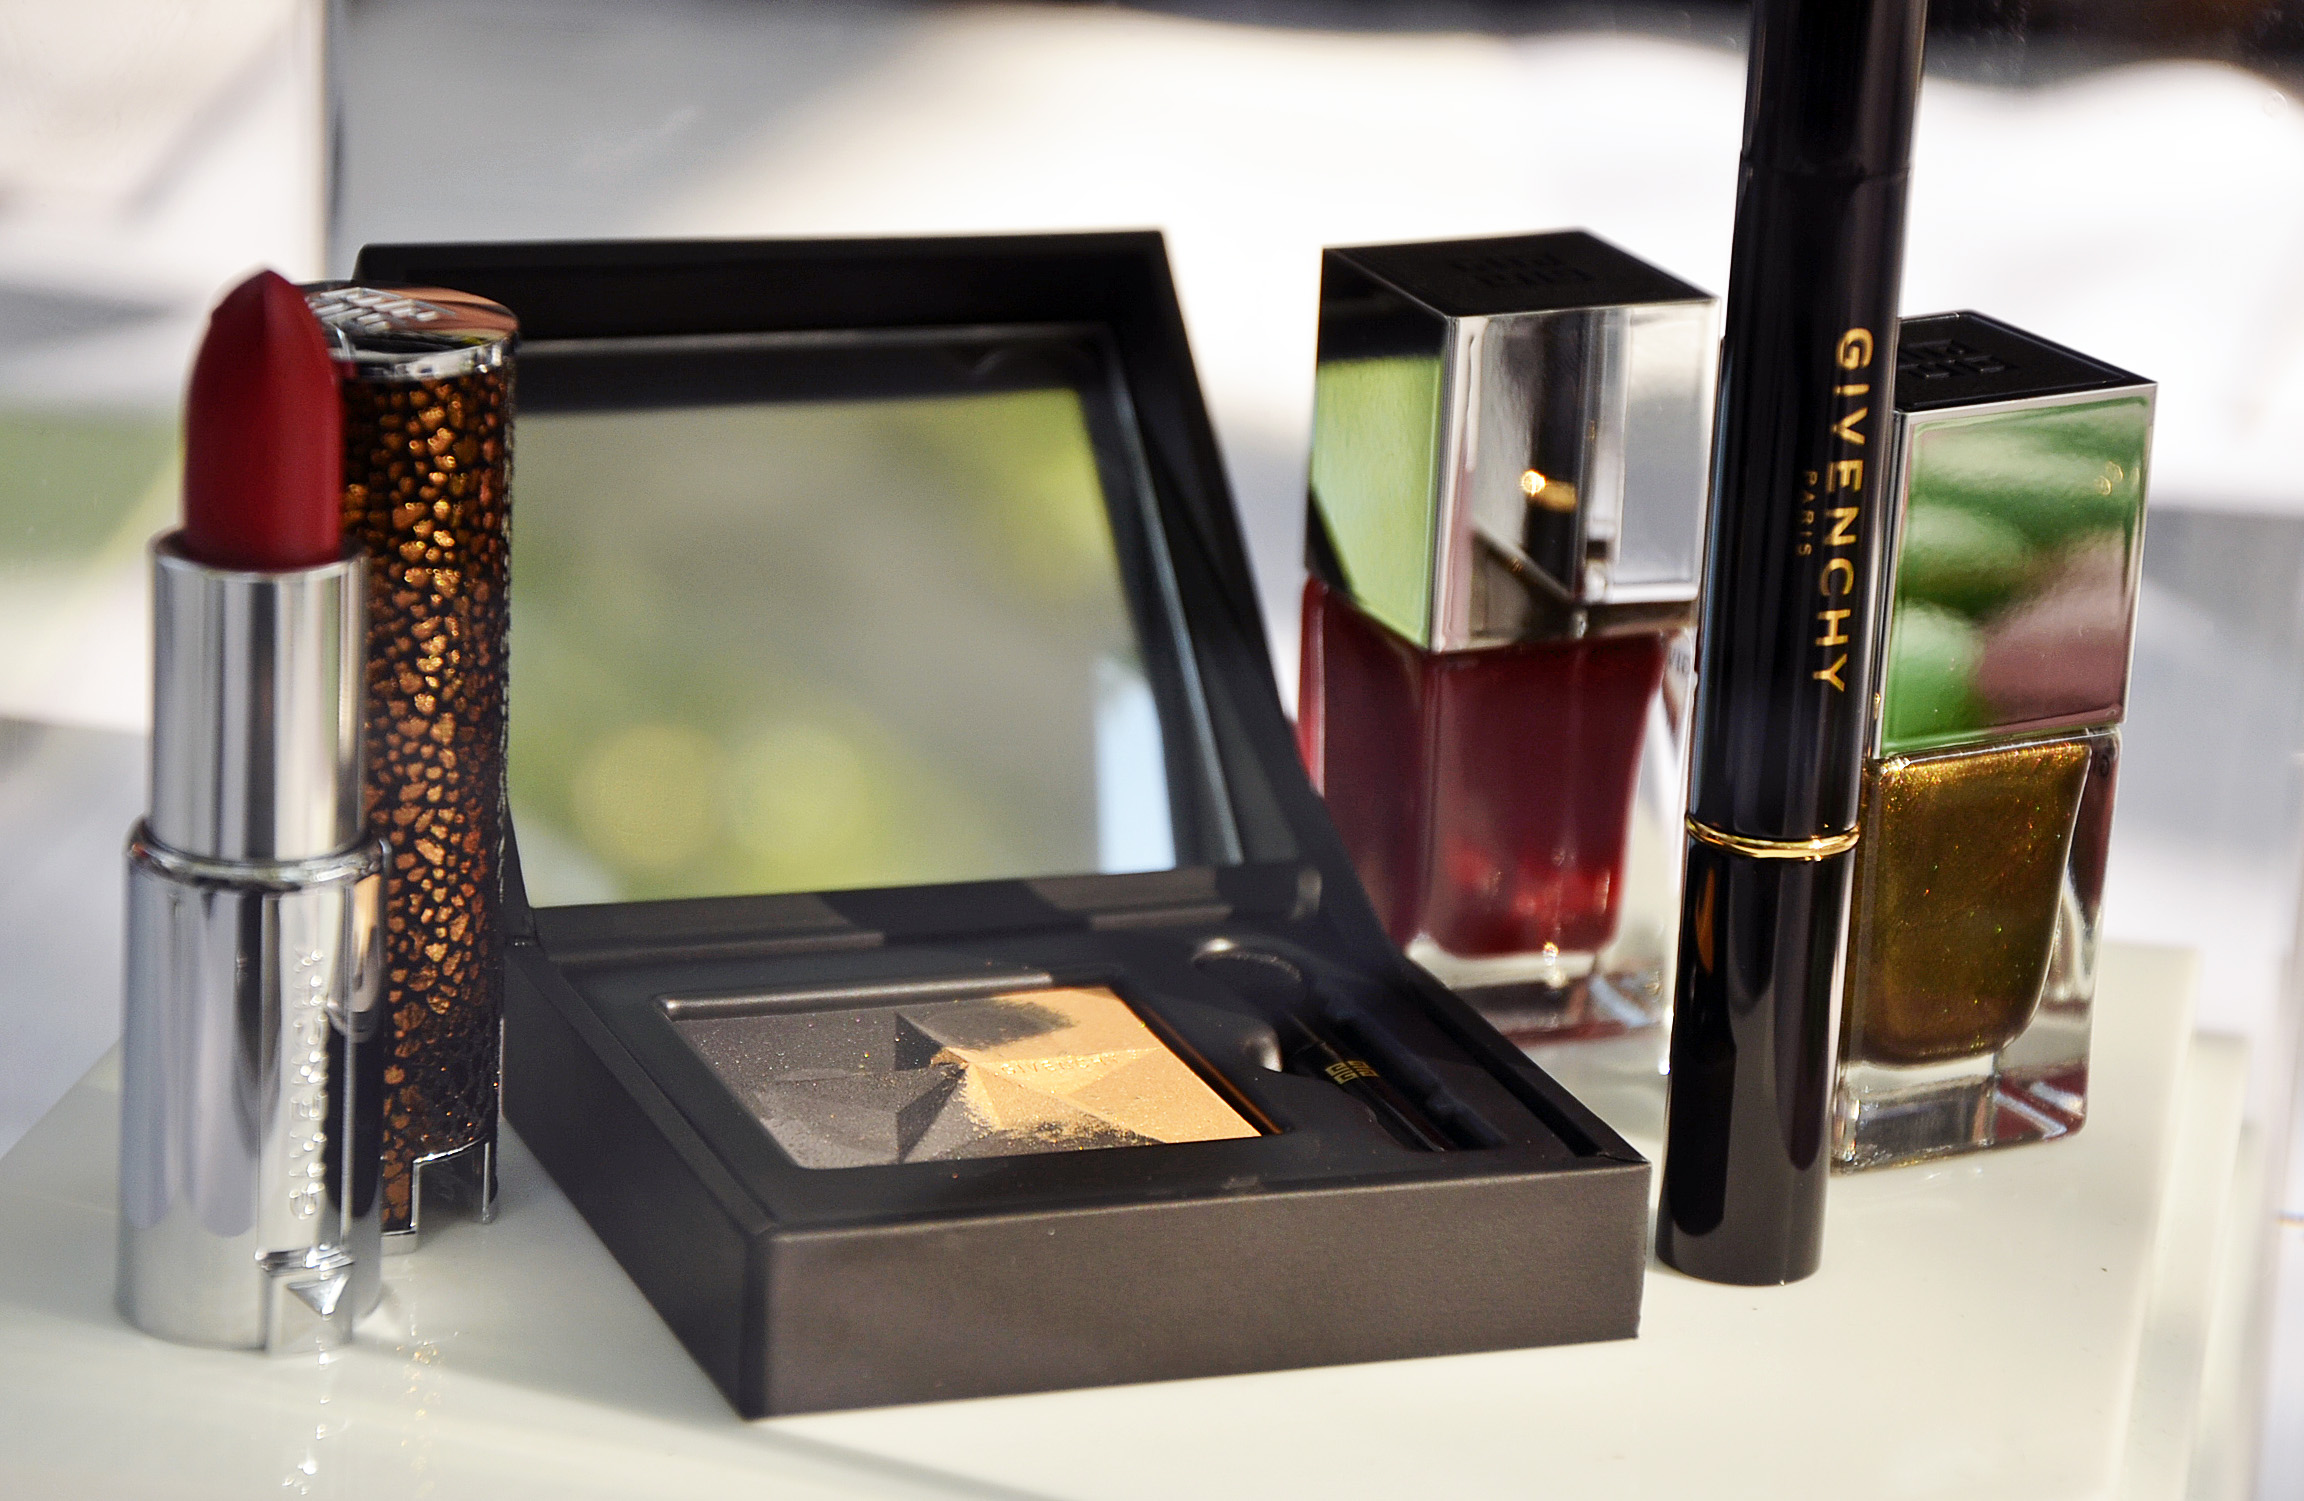 Givenchy Ondulations Precieuses Holiday 2013 Collection